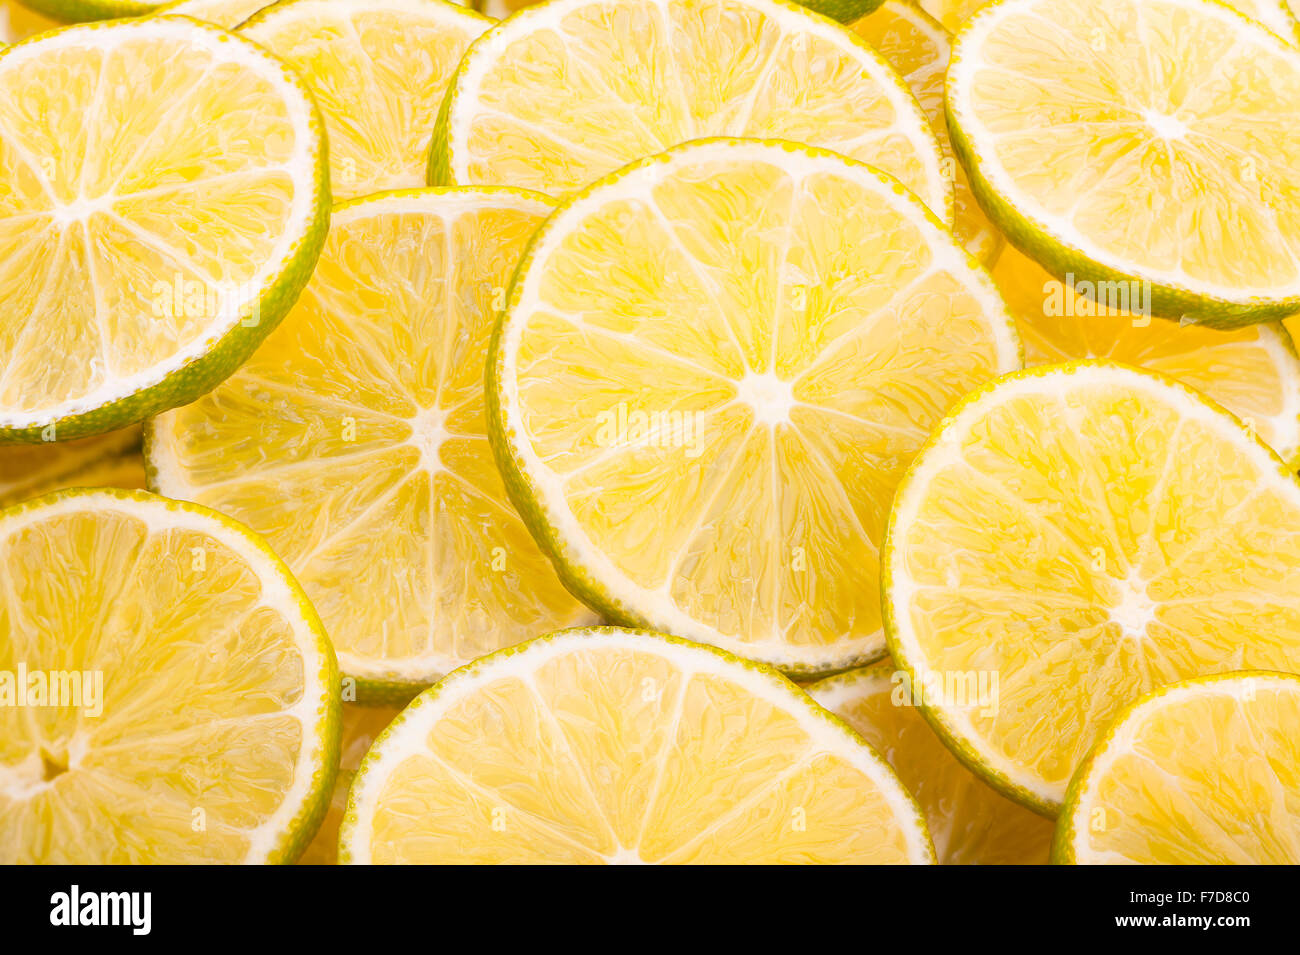 lime slices closeup - Stock Image